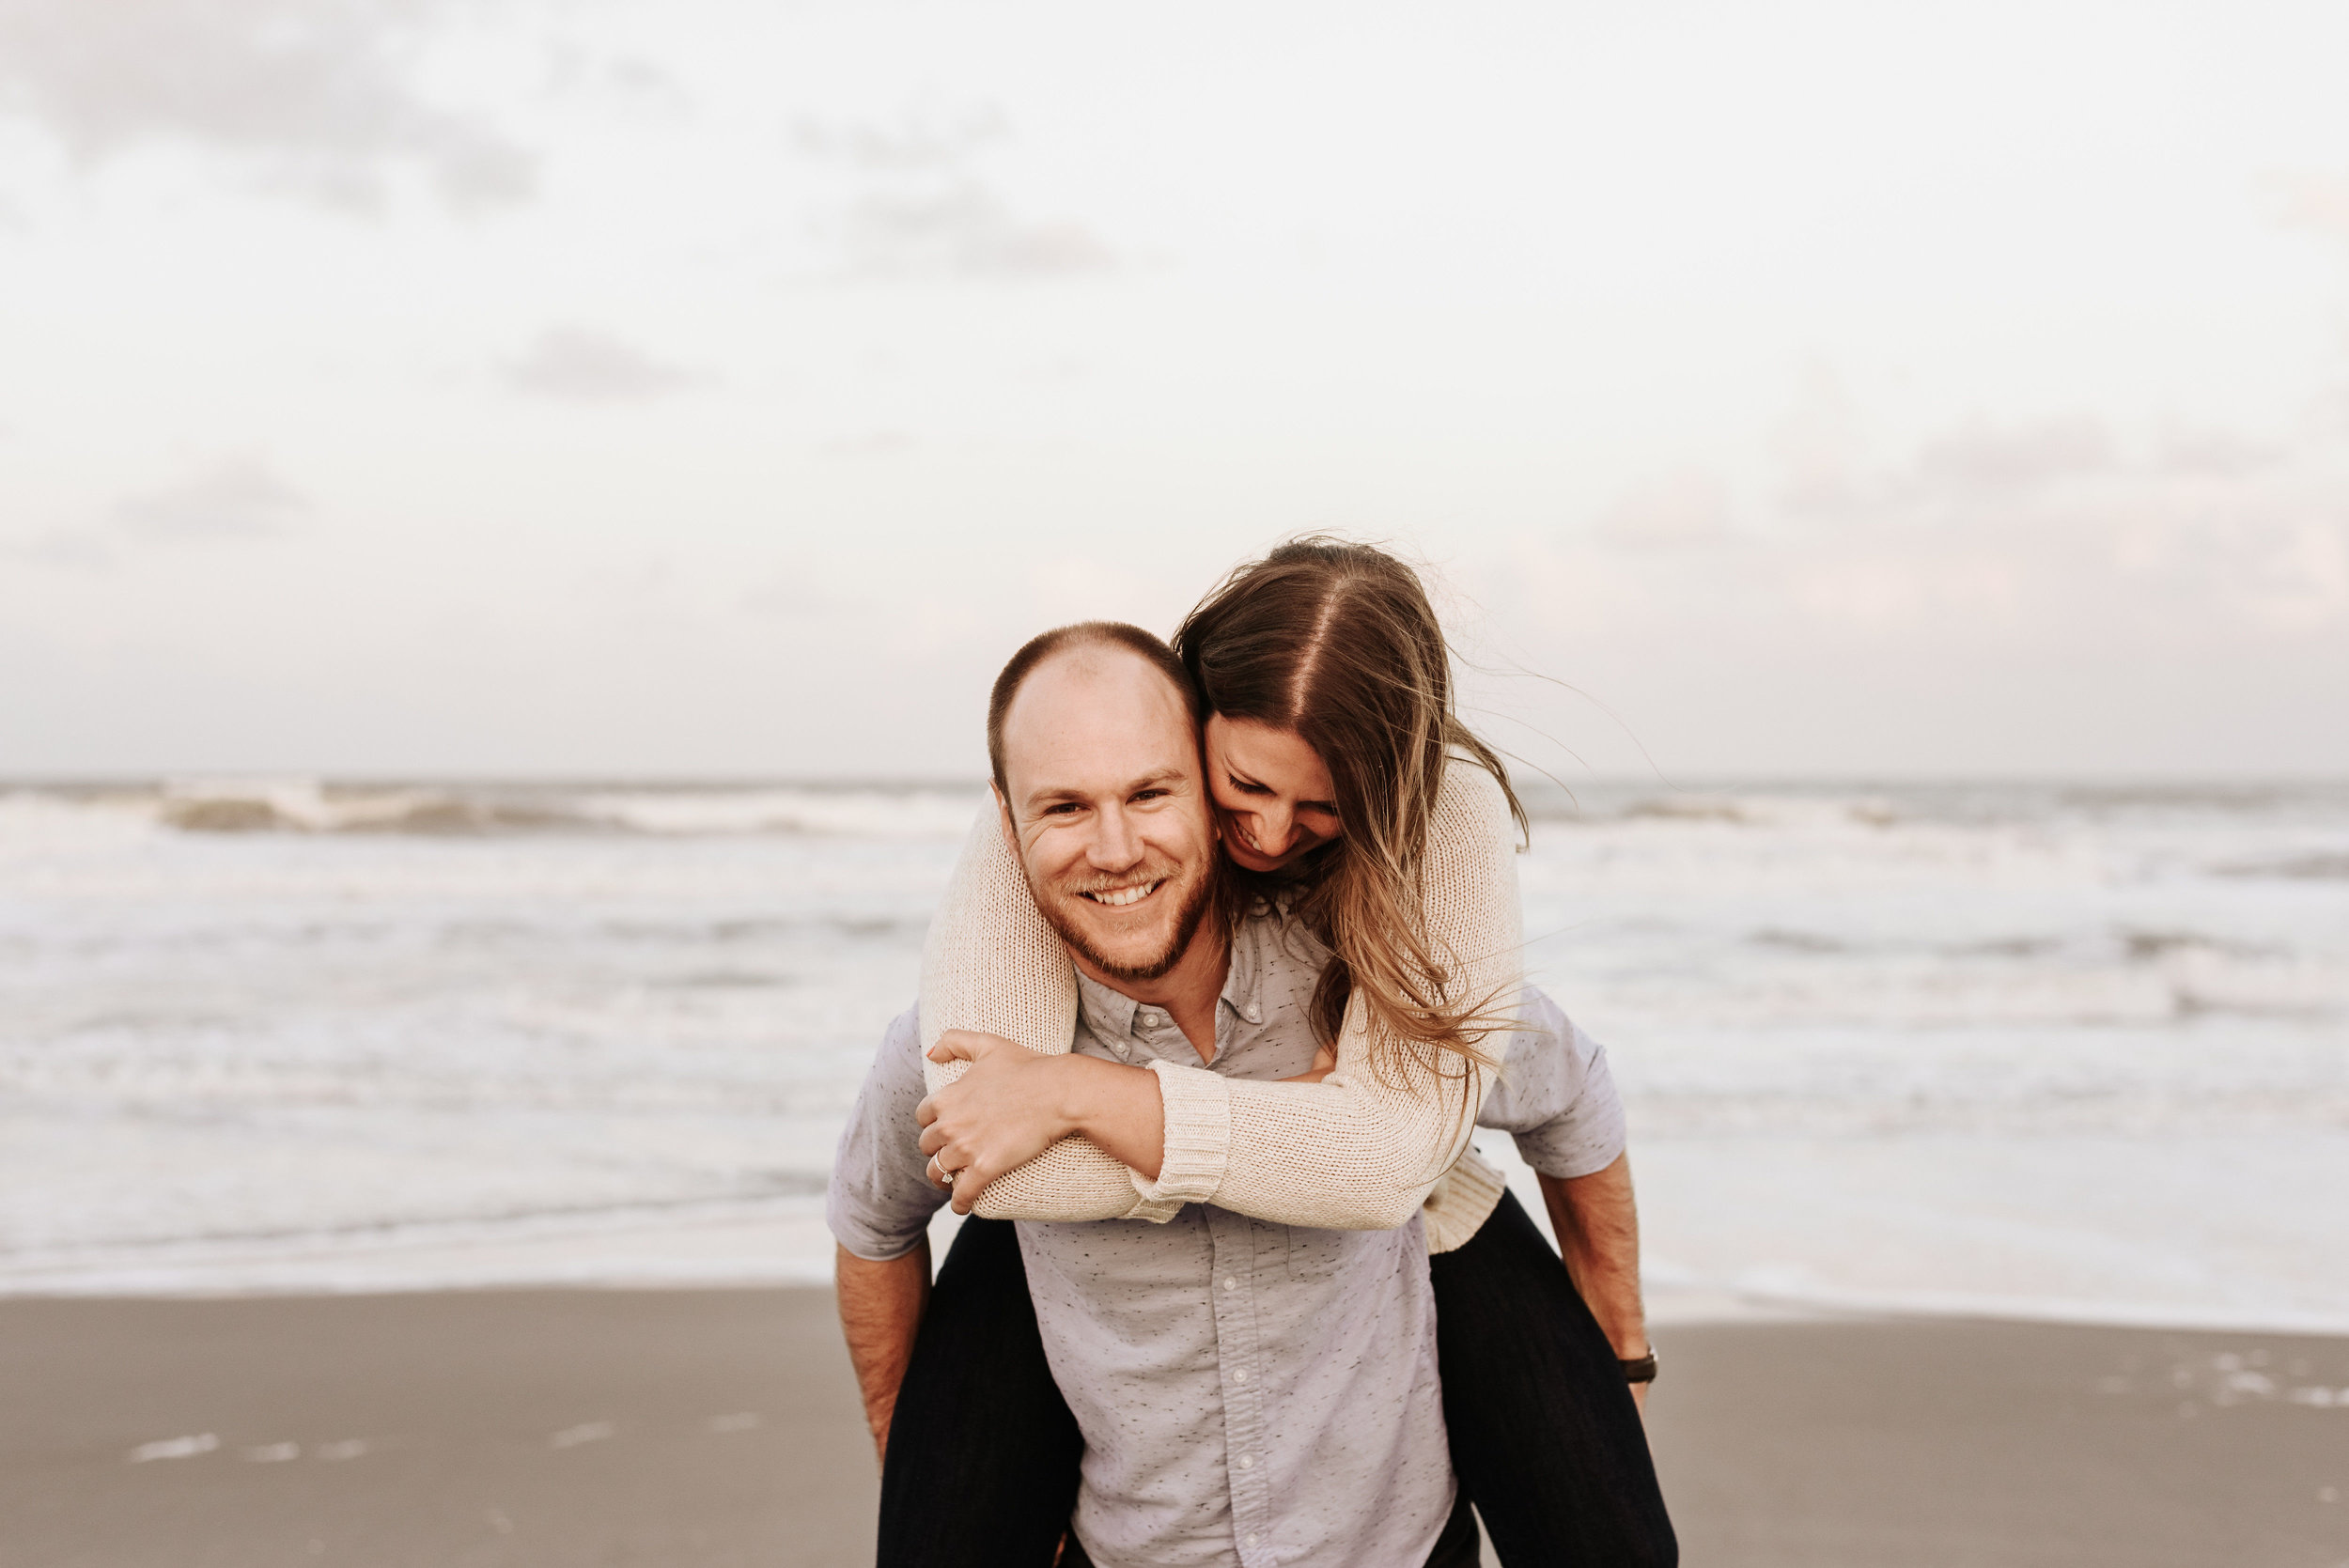 Courtney_Luke_Wedding_Engagement_Session_Cocoa_Beach_Florida_Photography_by_V_4850.jpg